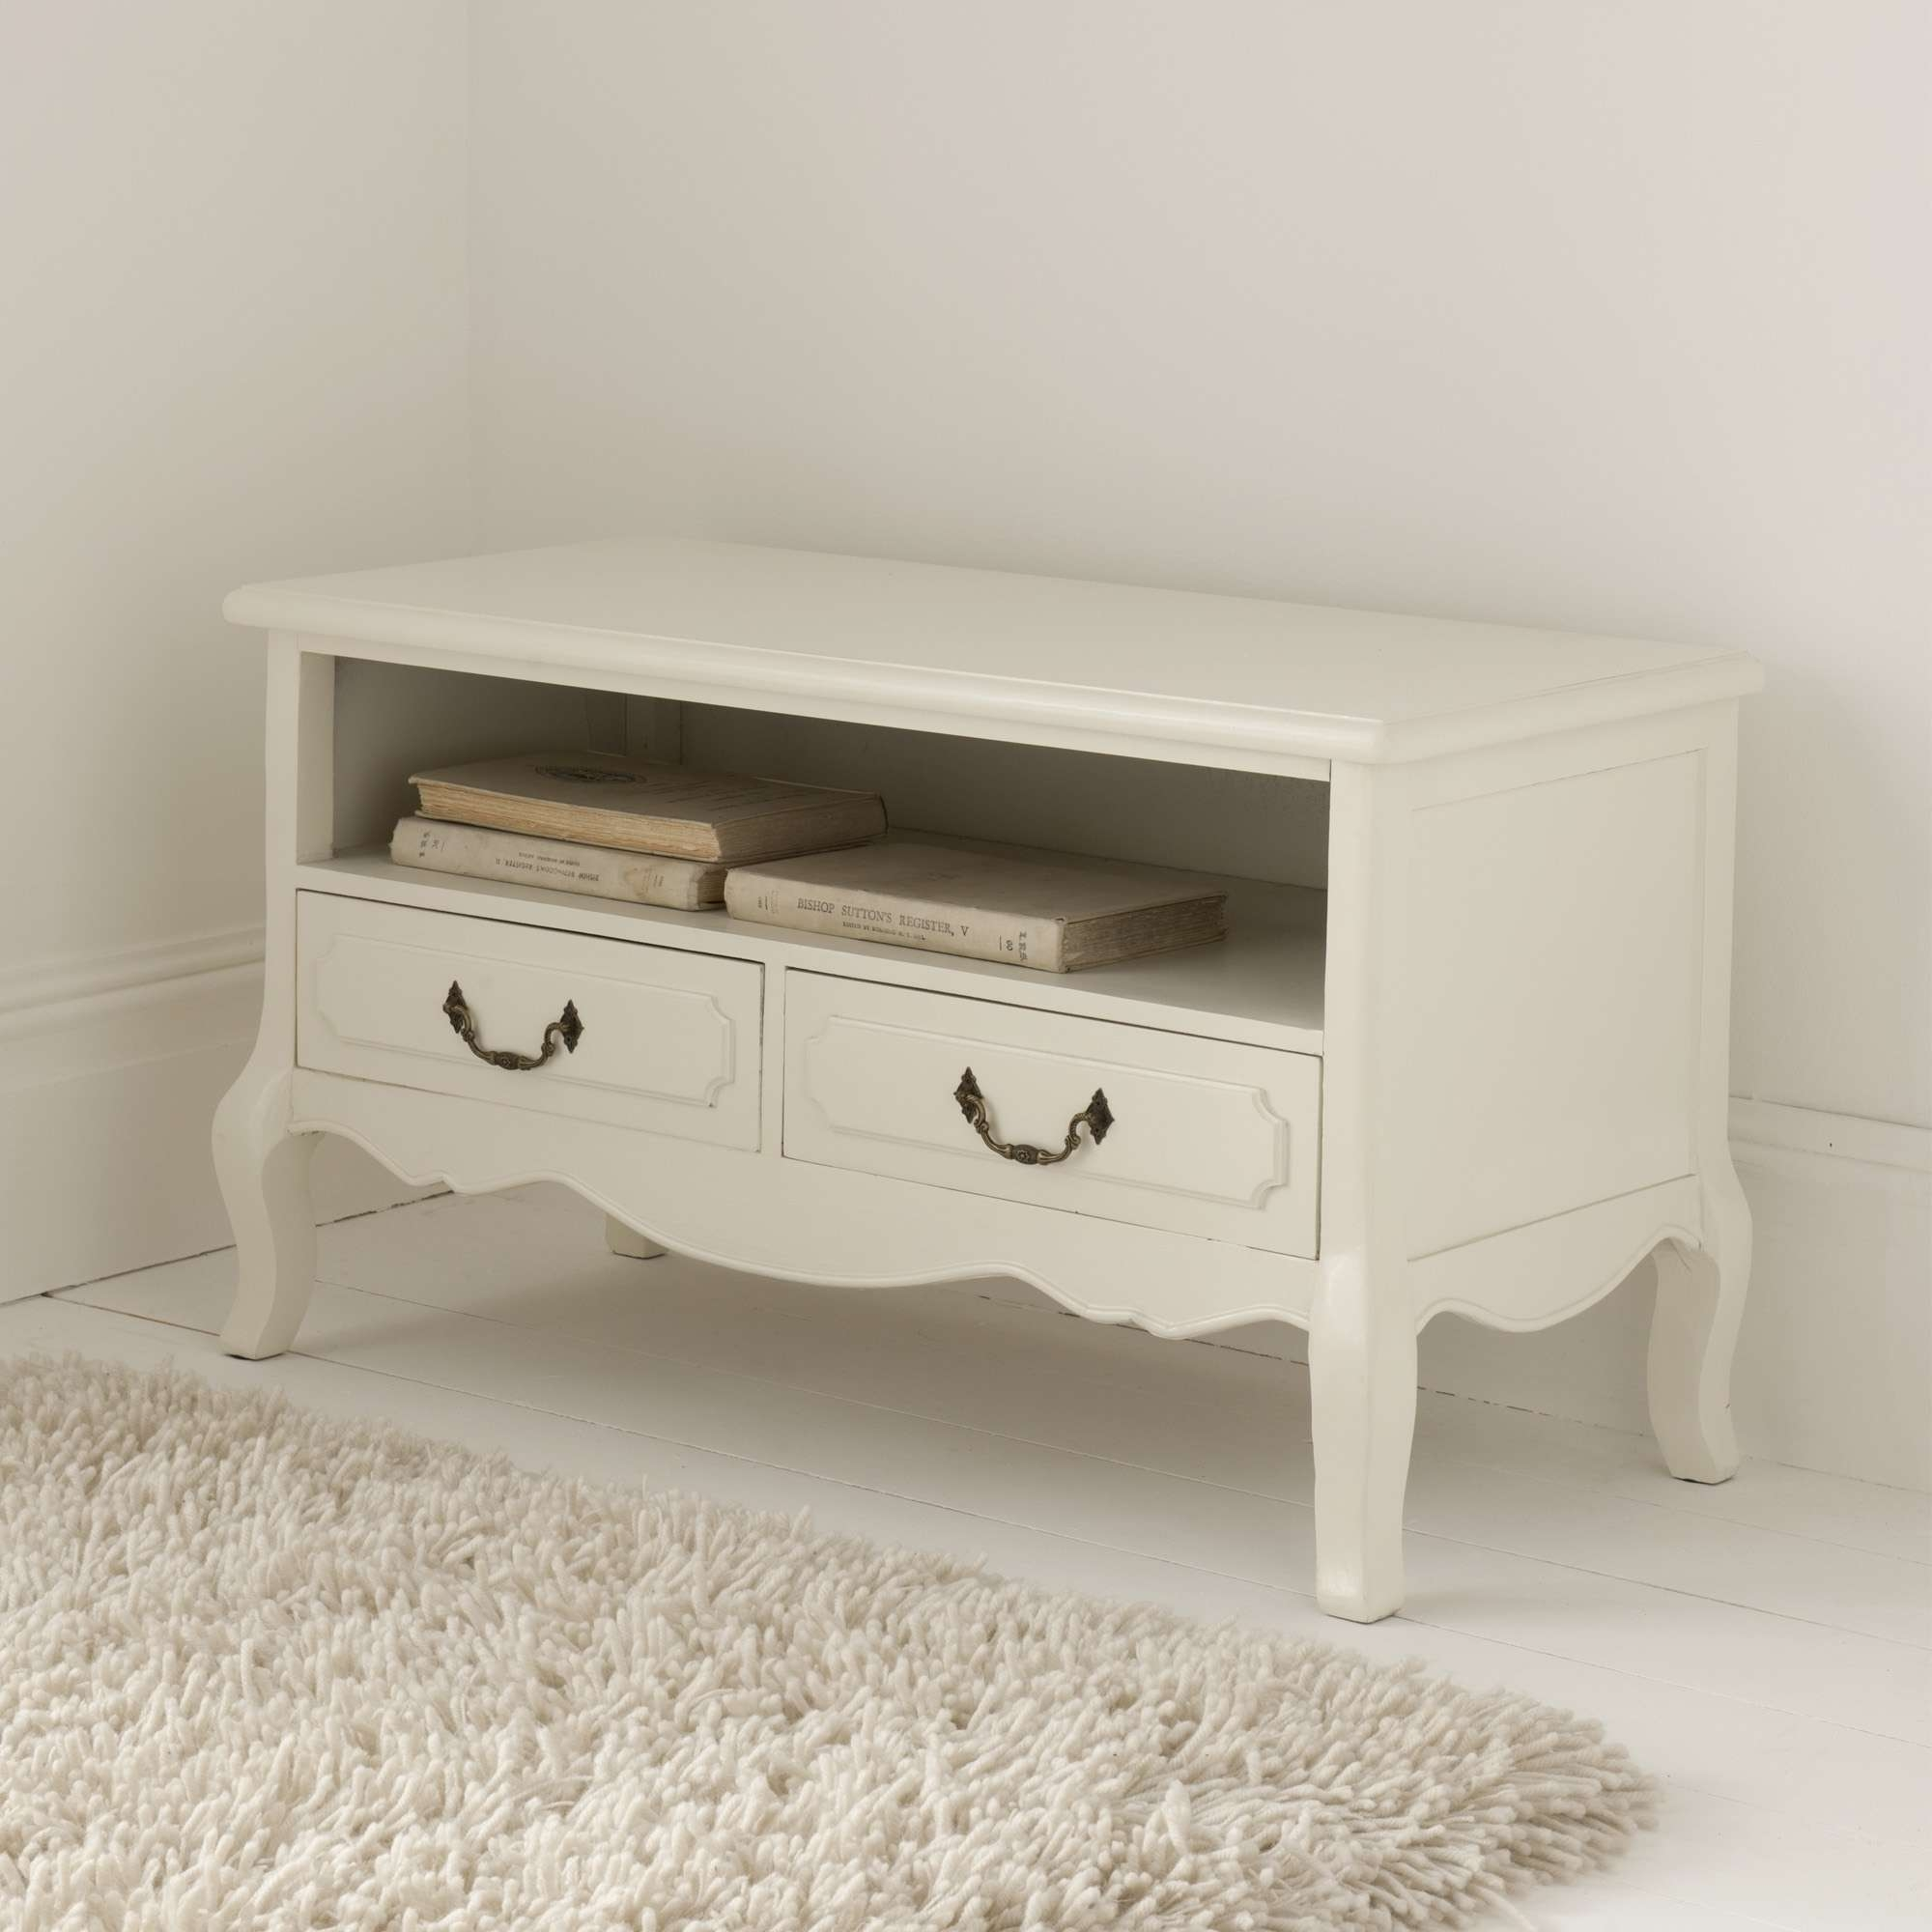 Shabby Chic Furniture For Your Home І Homesdirect365 Intended For Shabby Chic Tv Cabinets (View 14 of 20)